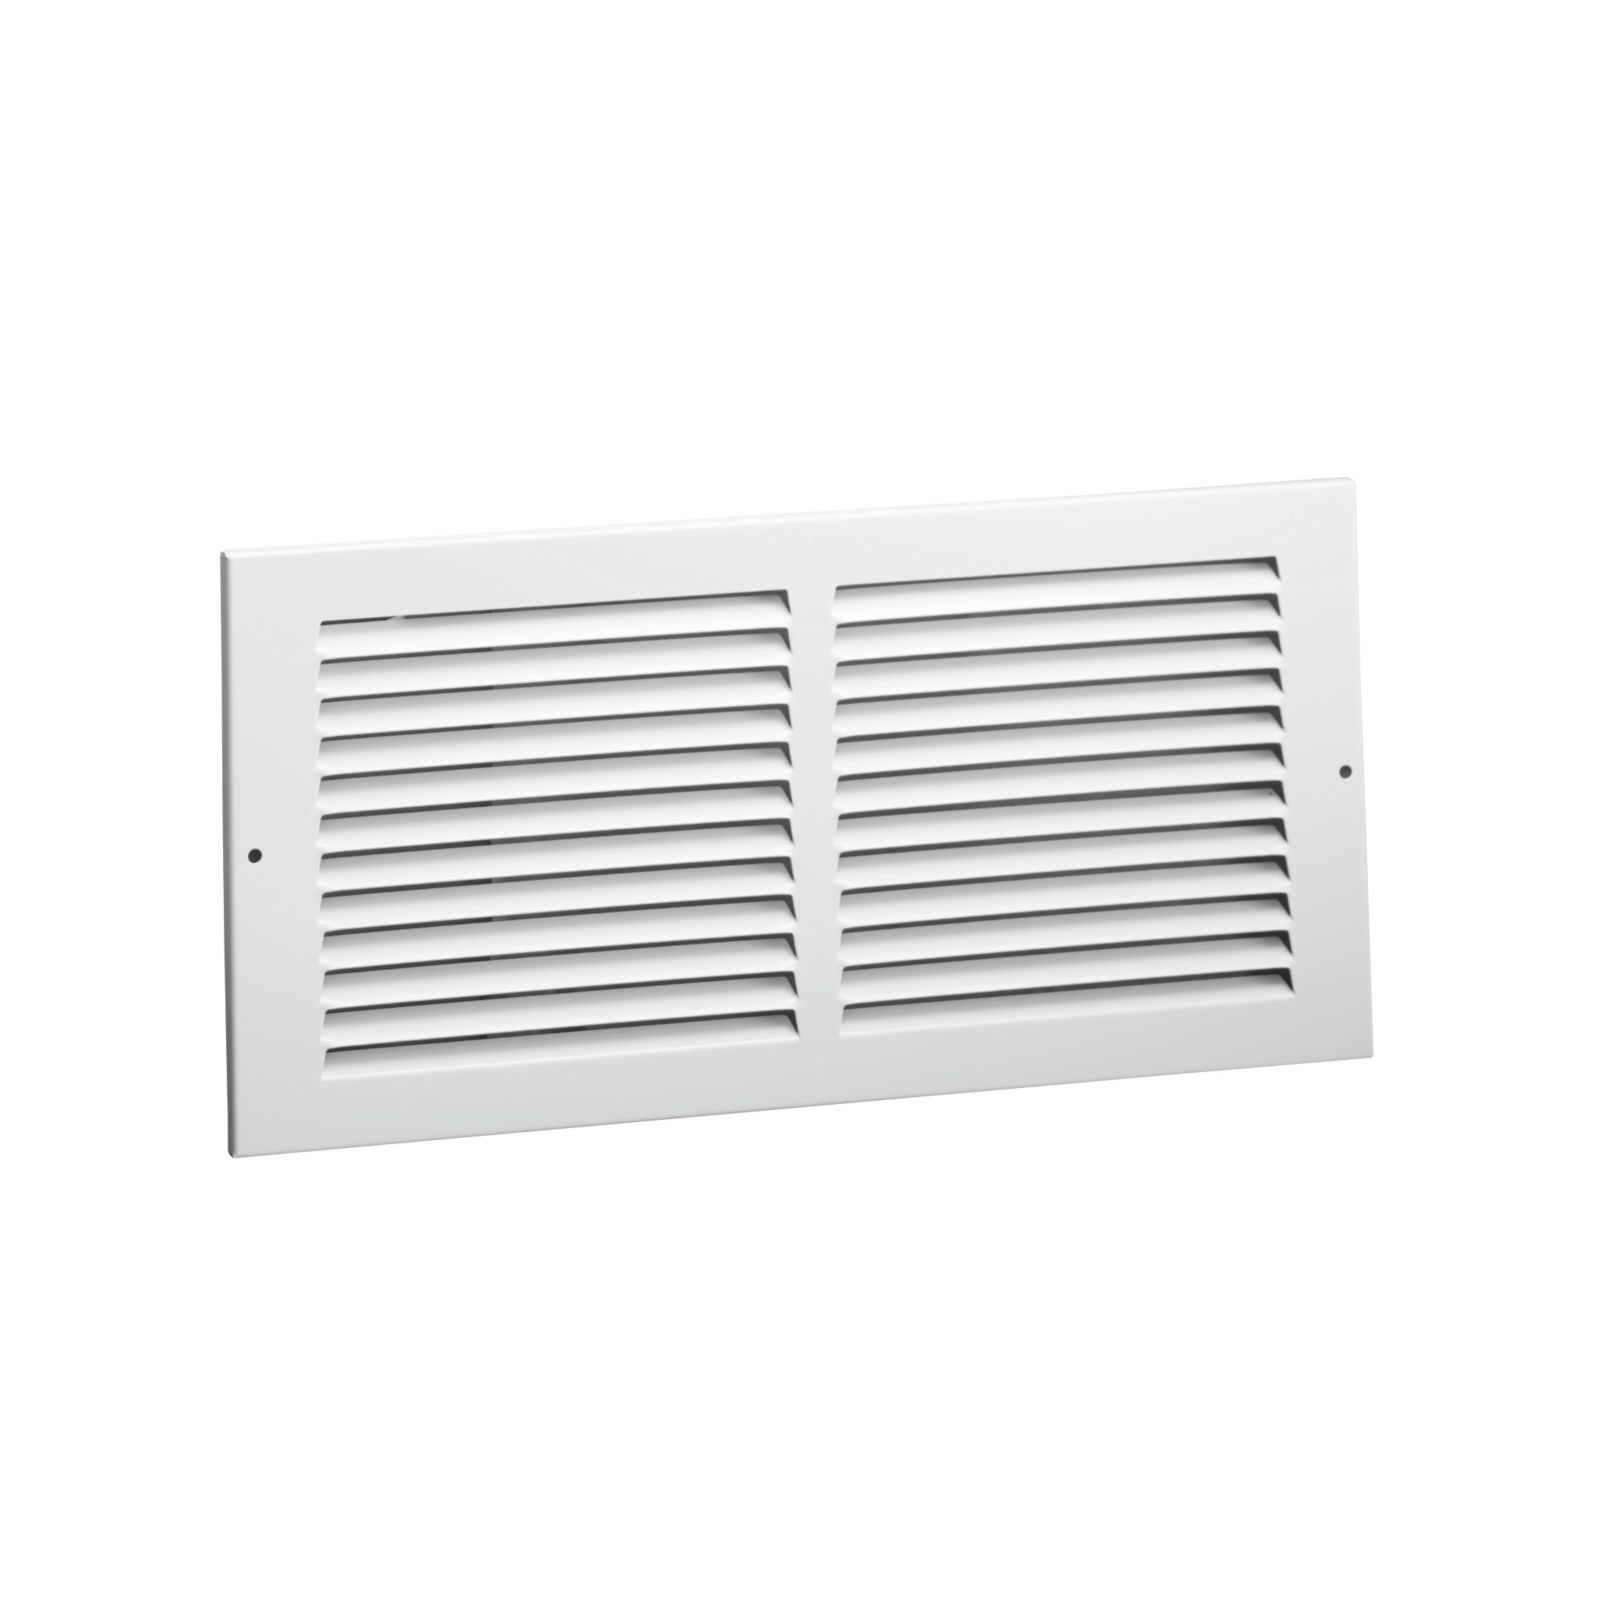 "Hart & Cooley 703982 - #672M Steel Return Air Grille, White Finish, 14"" X 14"""